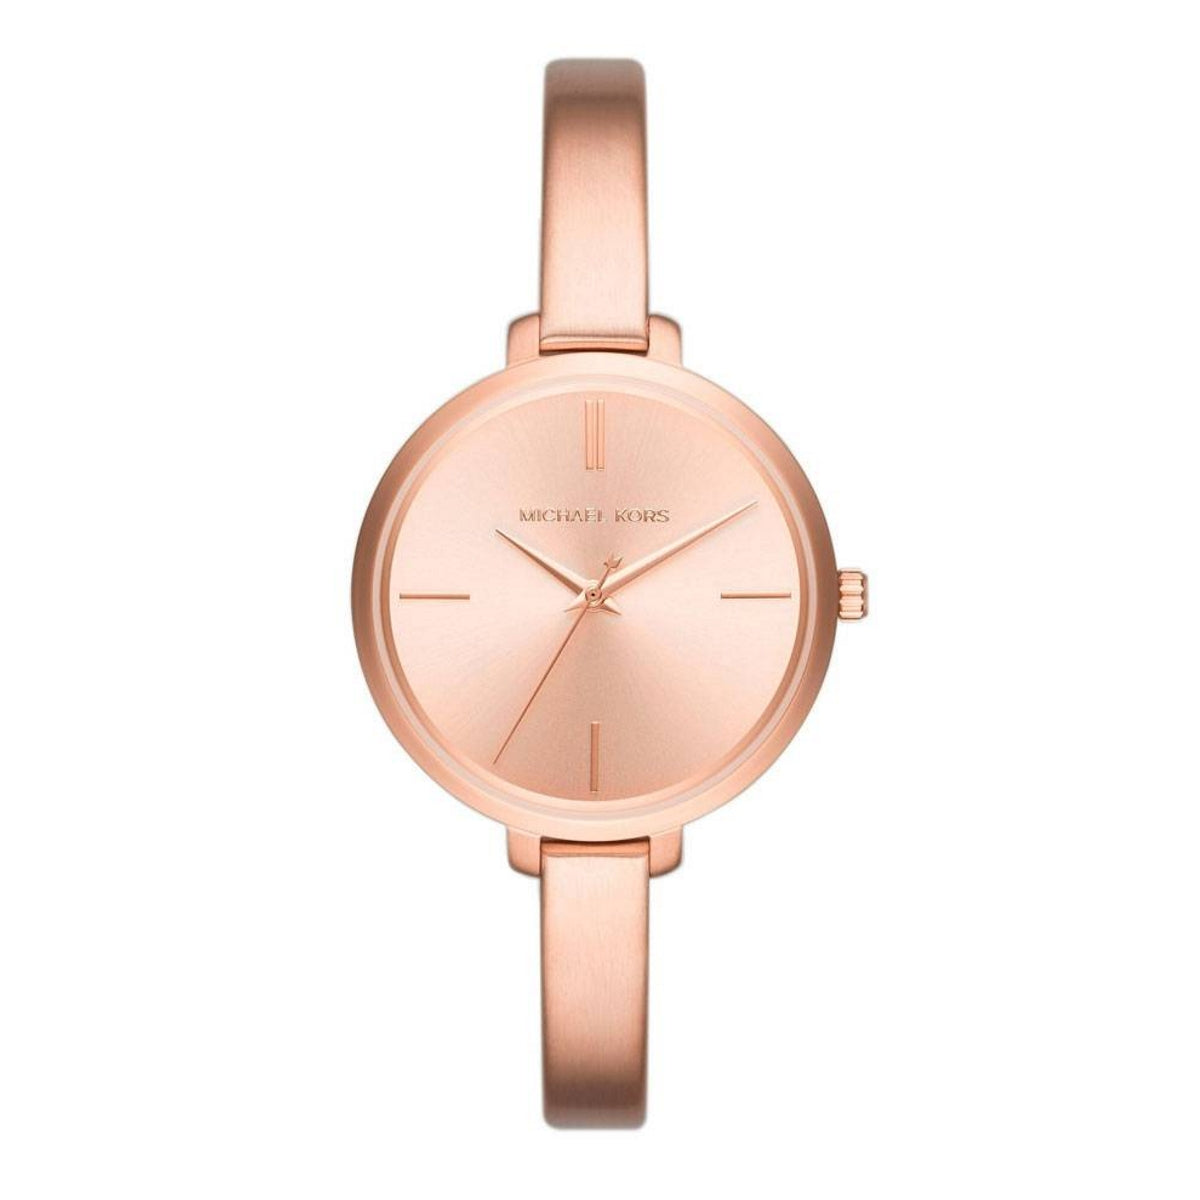 be91bf830931 Michael Kors MK3547 Jaryn Rose Gold-Tone Women s Watch - MIMO DEALS